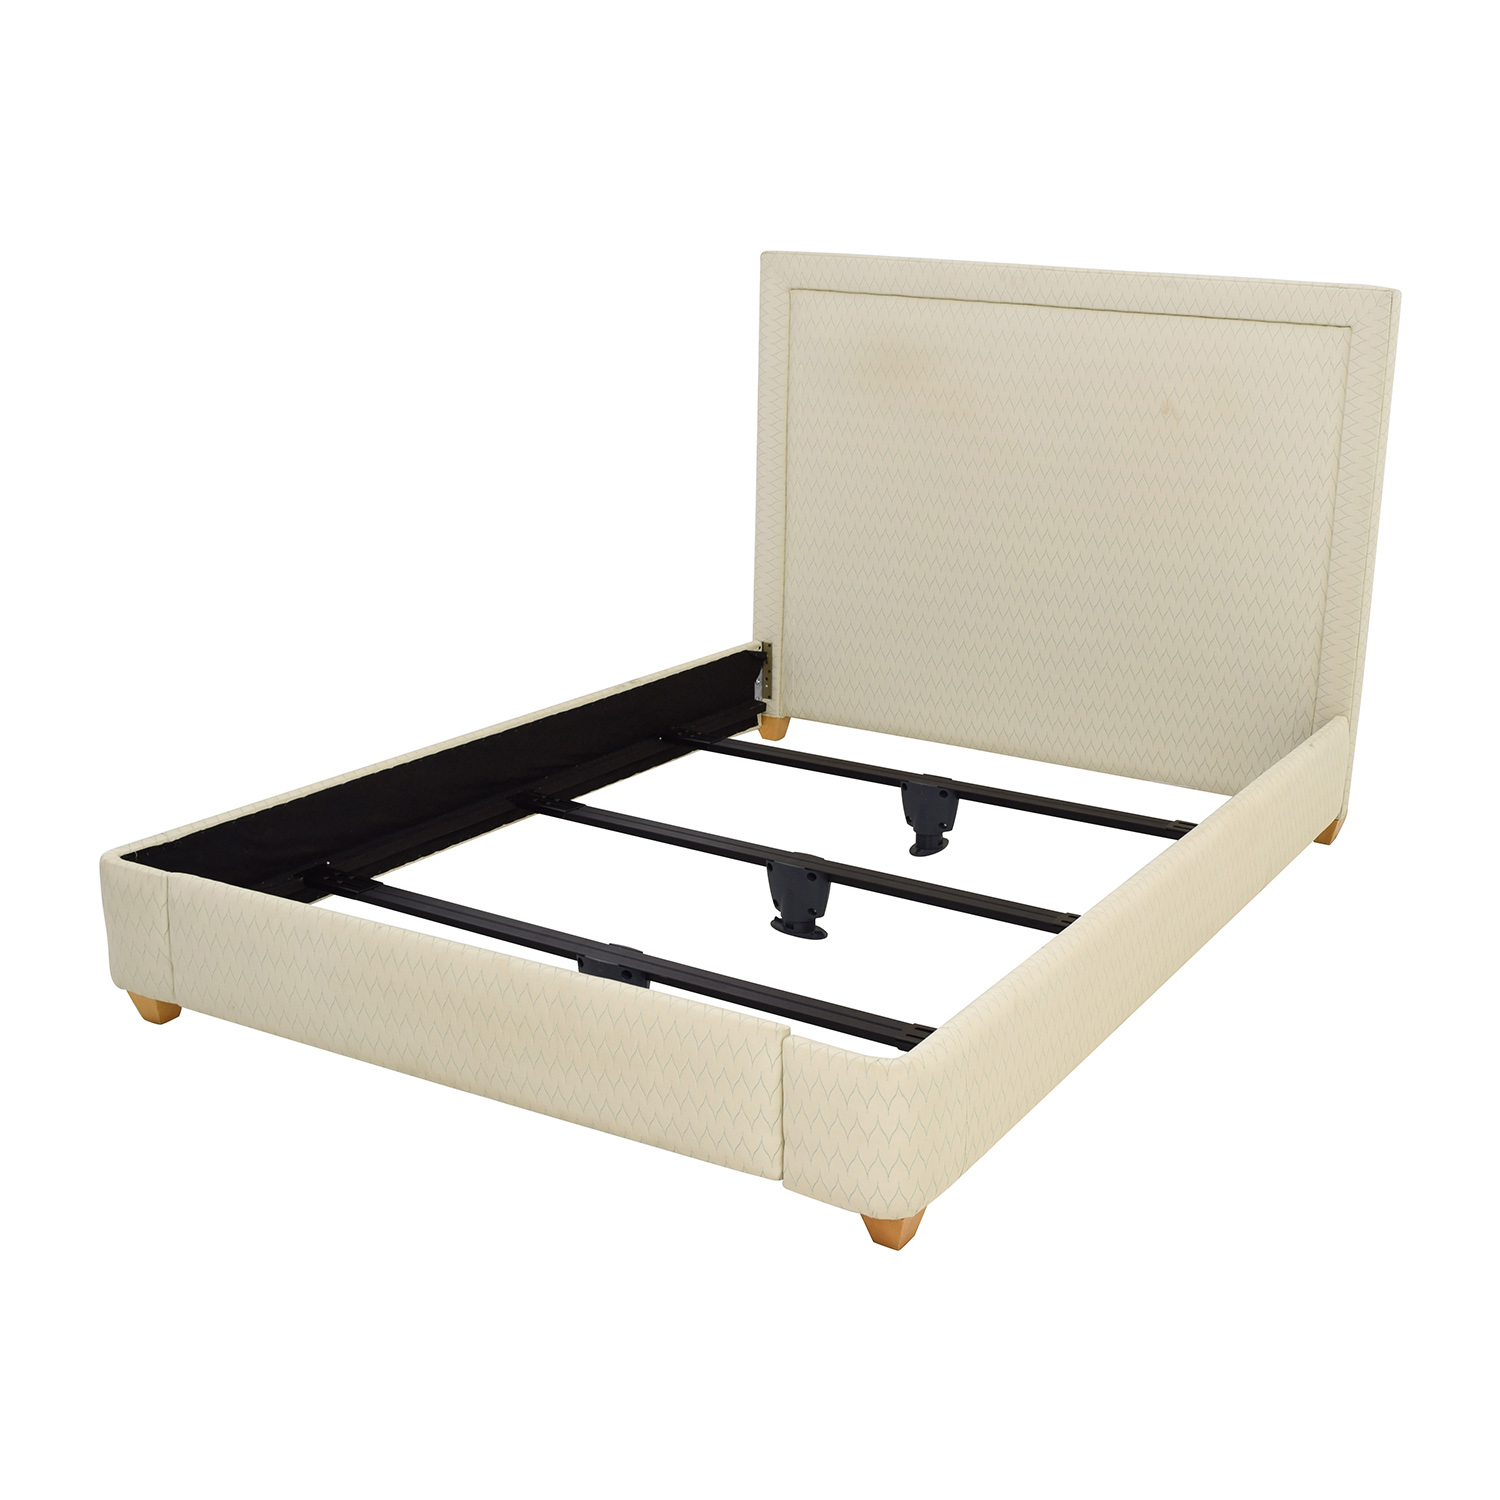 Buy A Bed Frame In Nyc